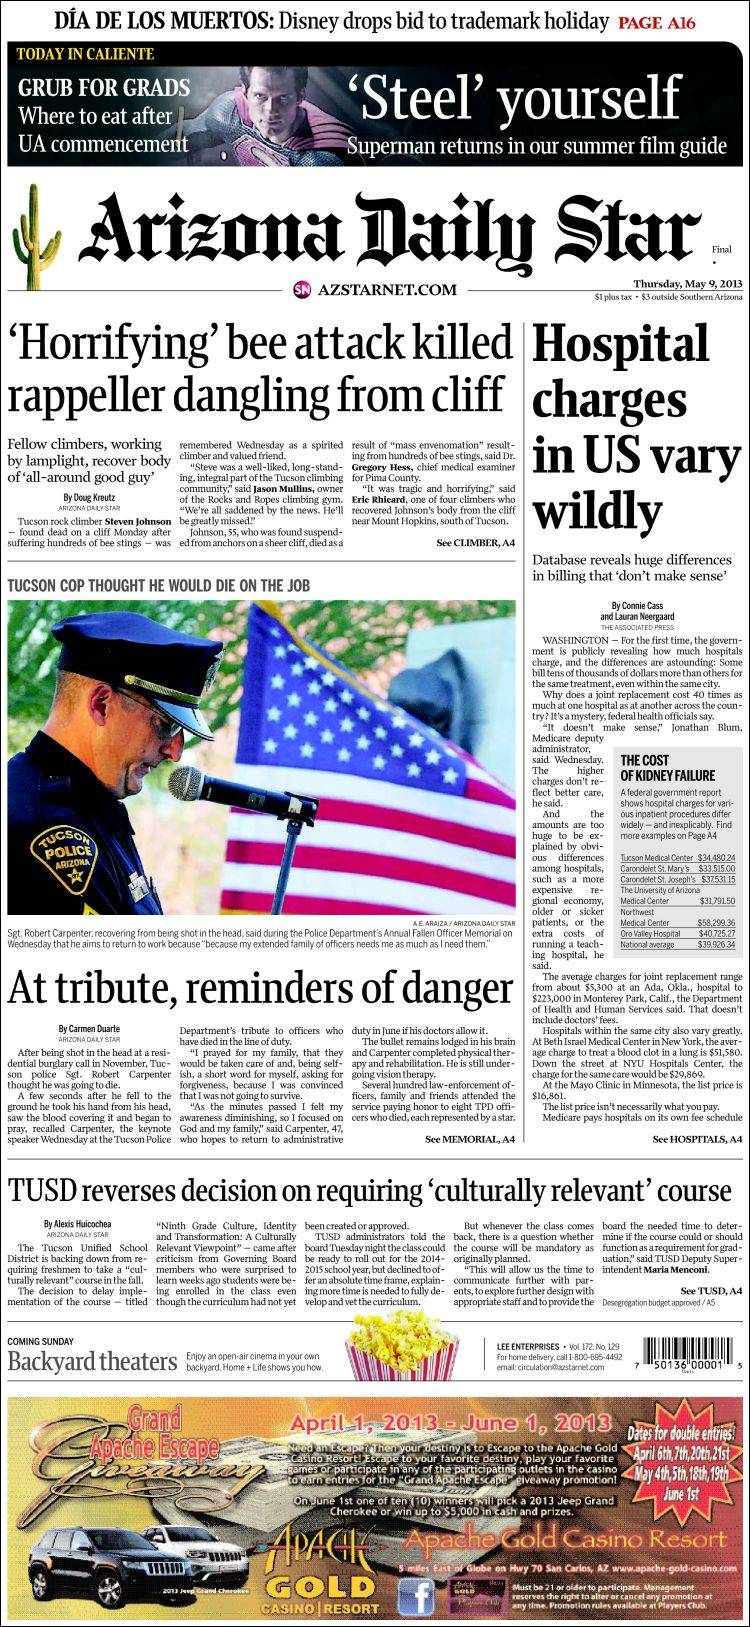 Arizona_daily_star-2013-05-09